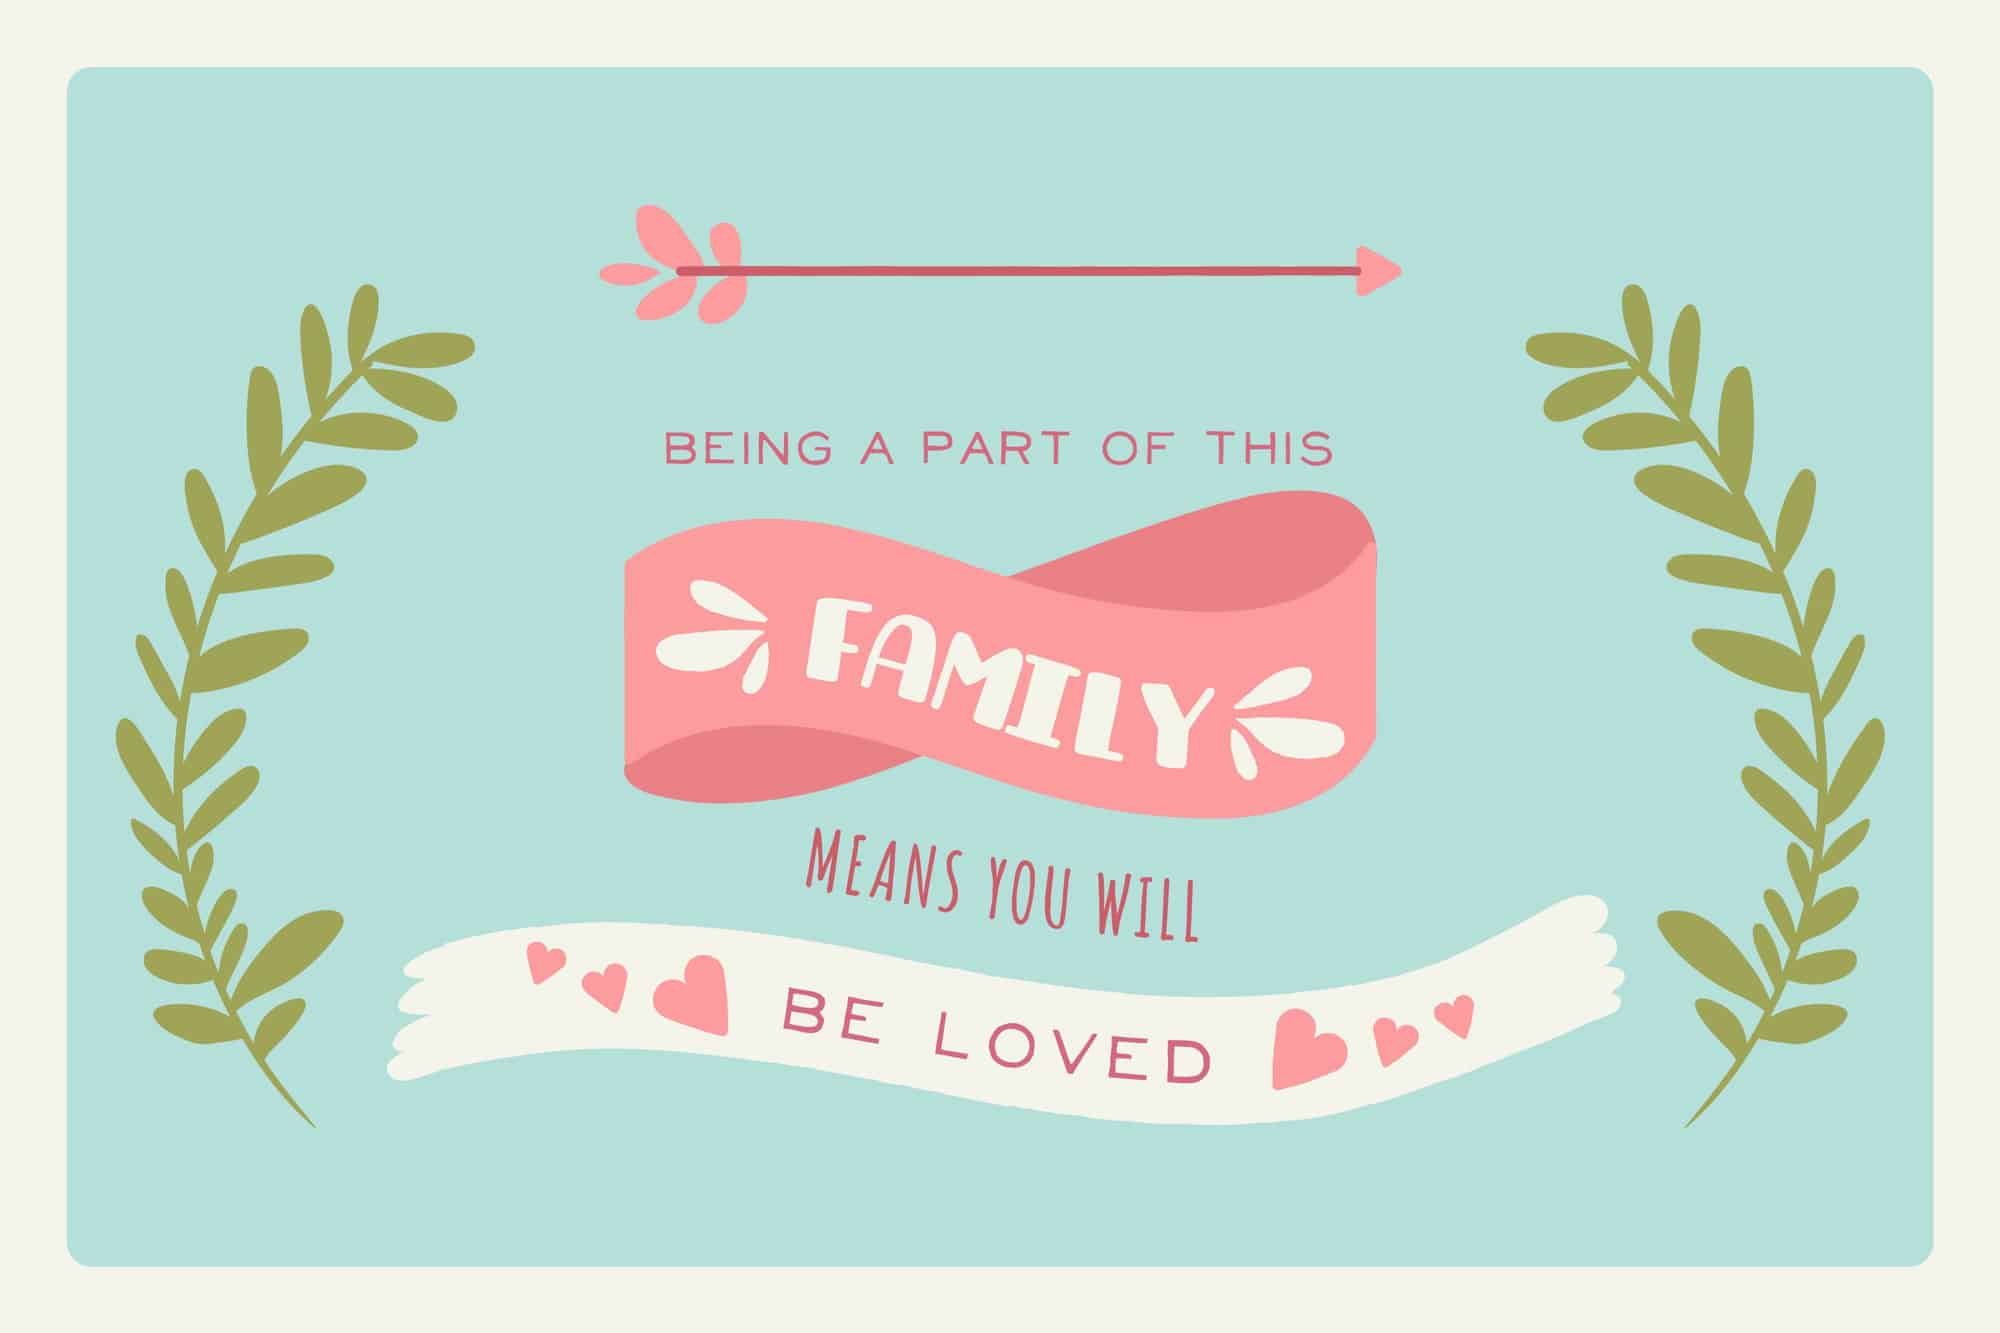 Inspirational Family Quotes Top 50 Family Quotes Viral Rang